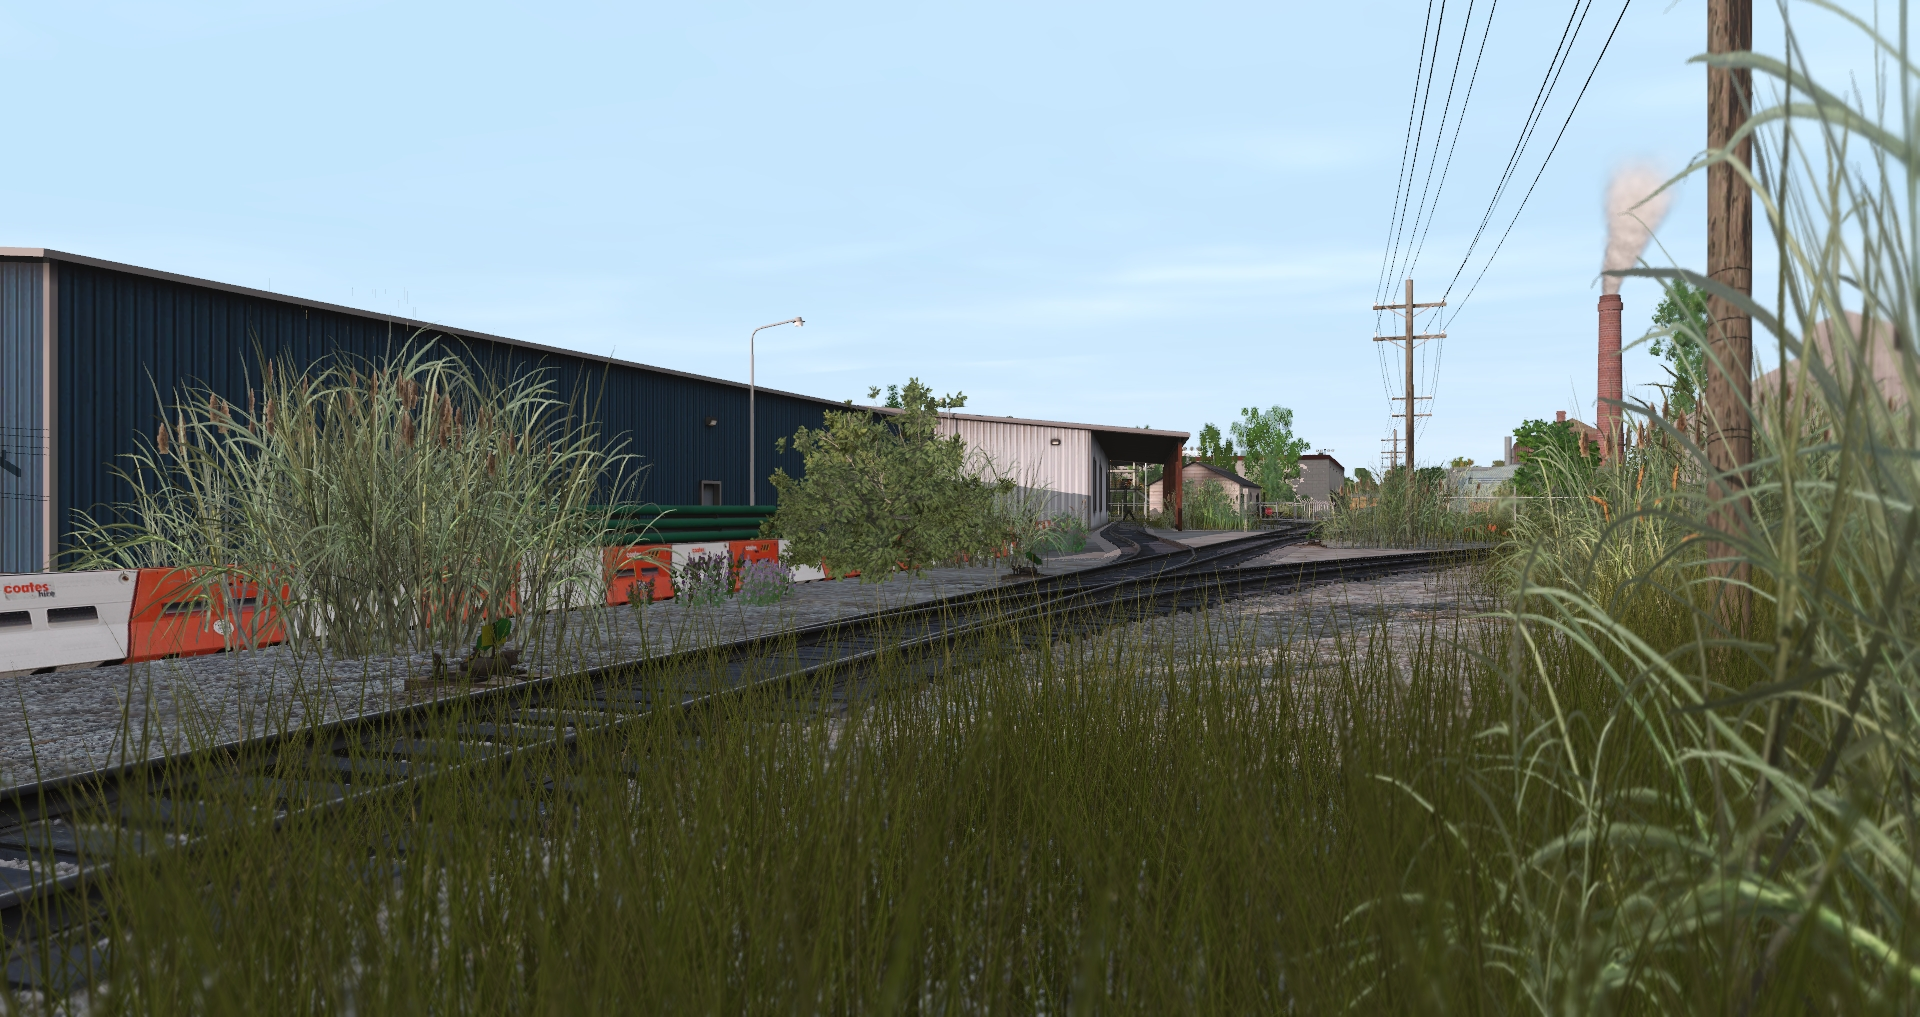 Railroad Junctions